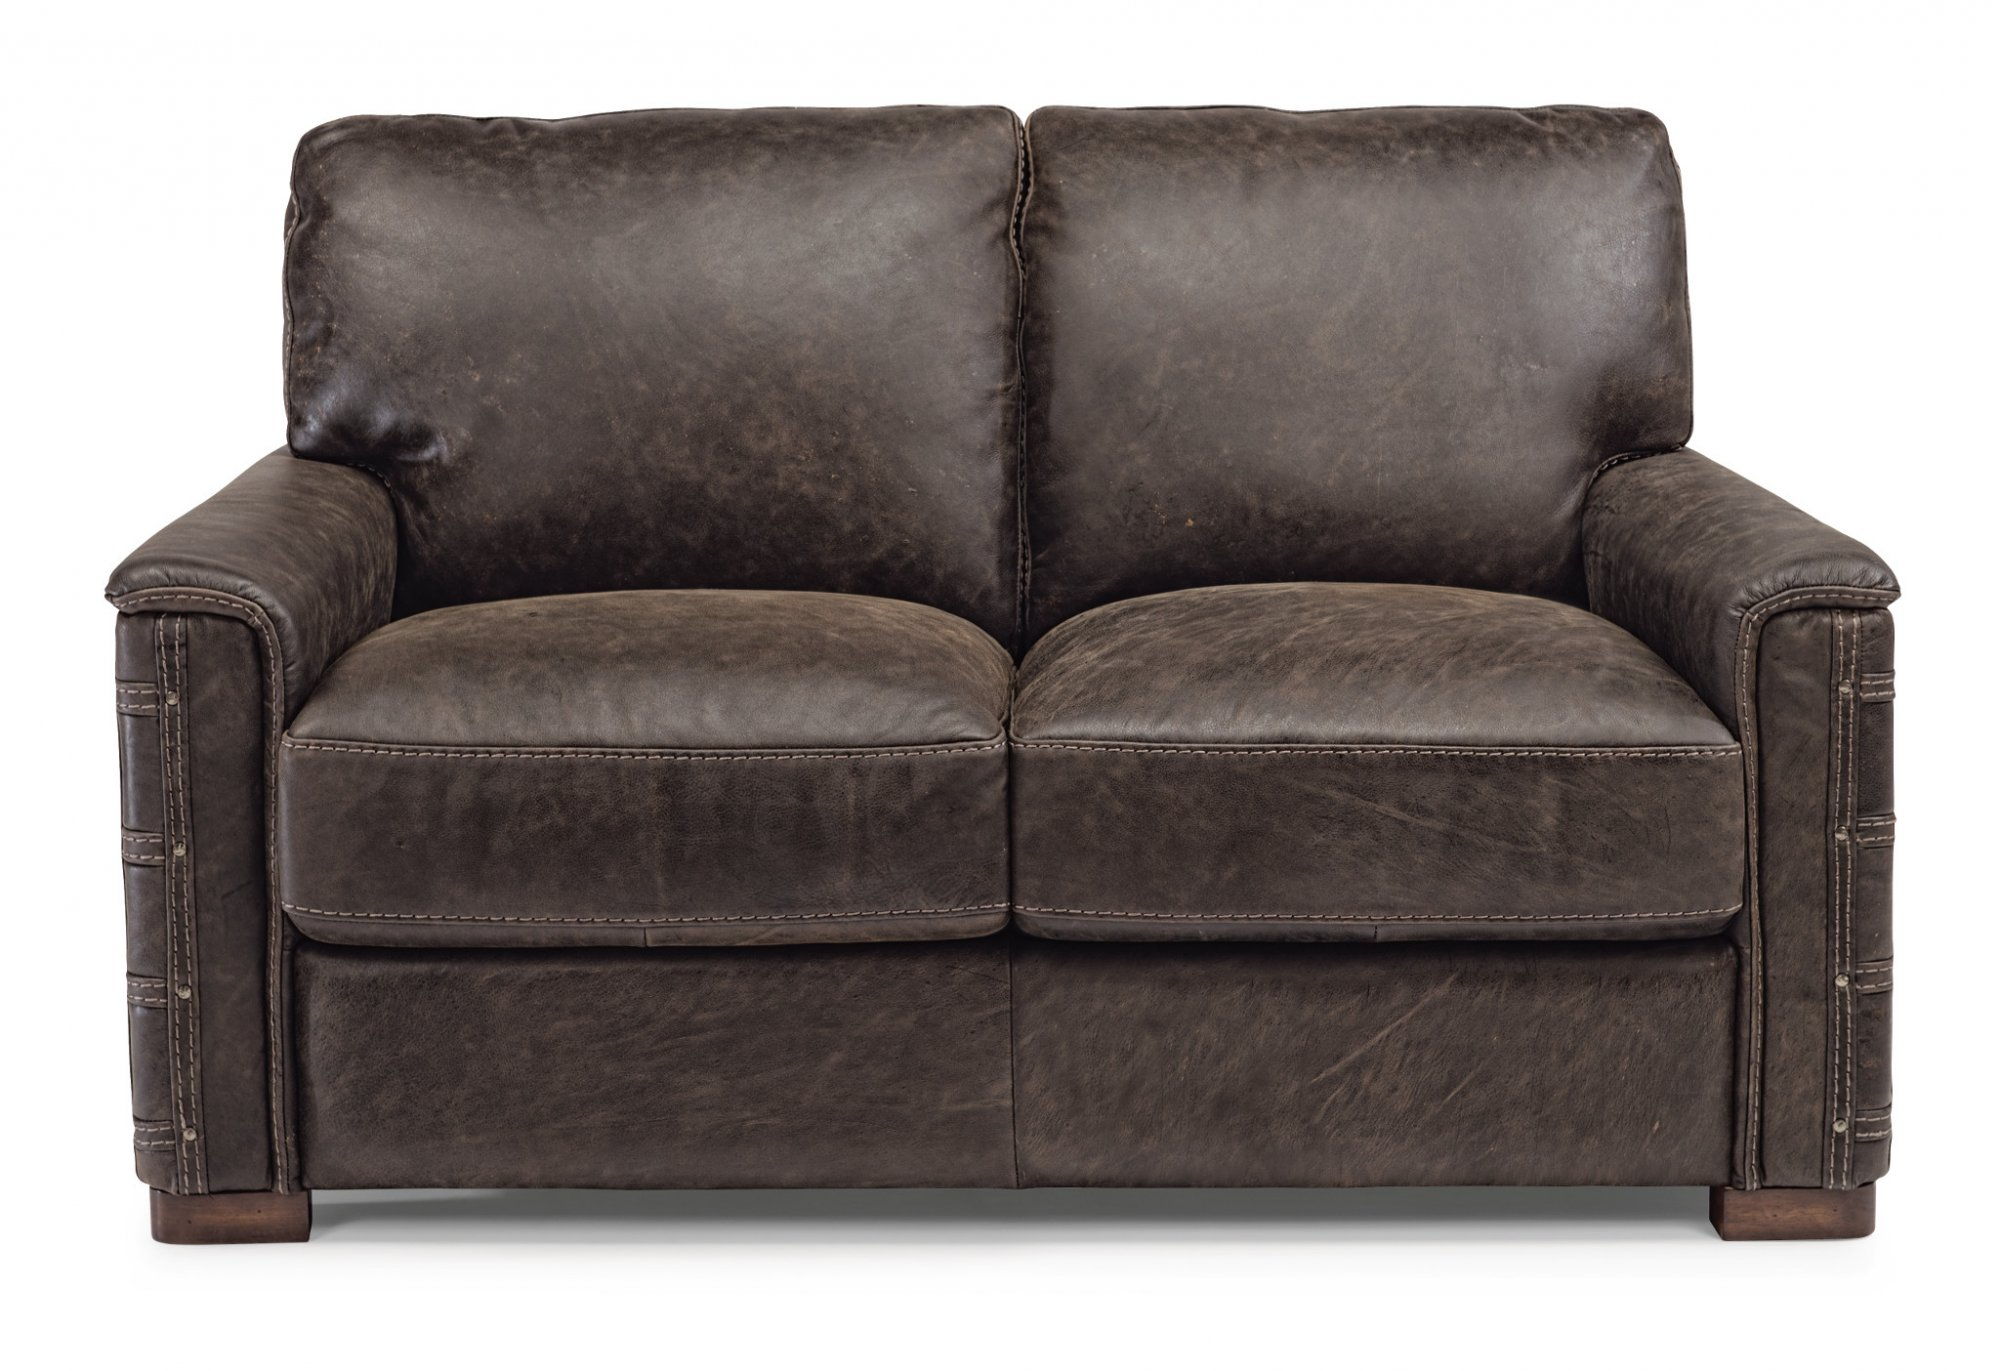 Sofas and loveseats reclining sofas and sleepers flexsteel leather loveseat parisarafo Gallery